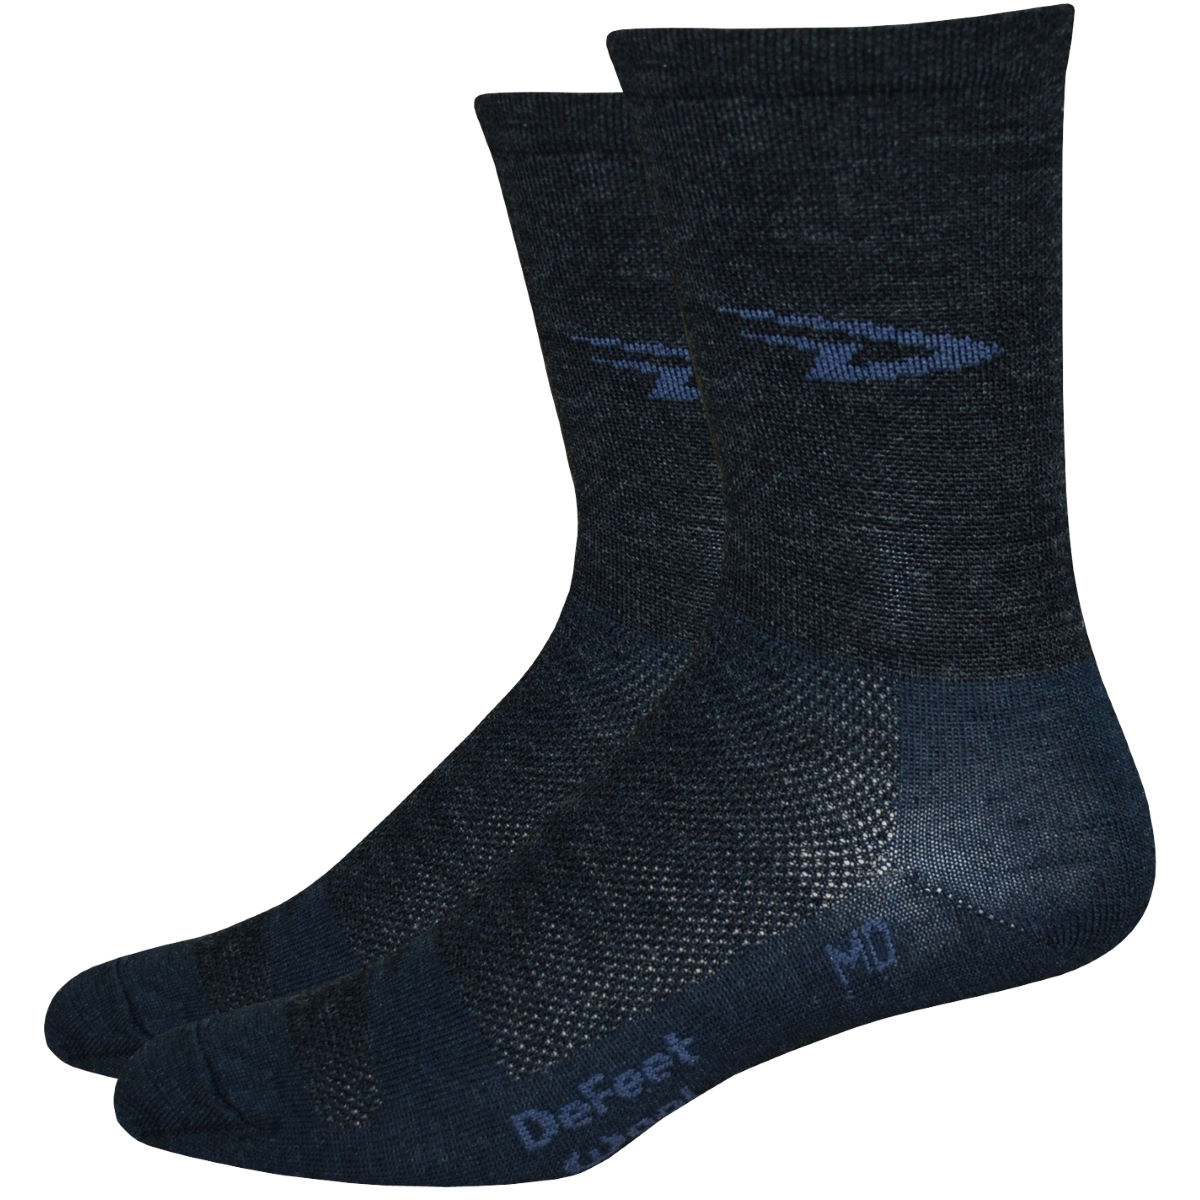 DeFeet DeFeet Wooleator Hi Top Socks   Socks